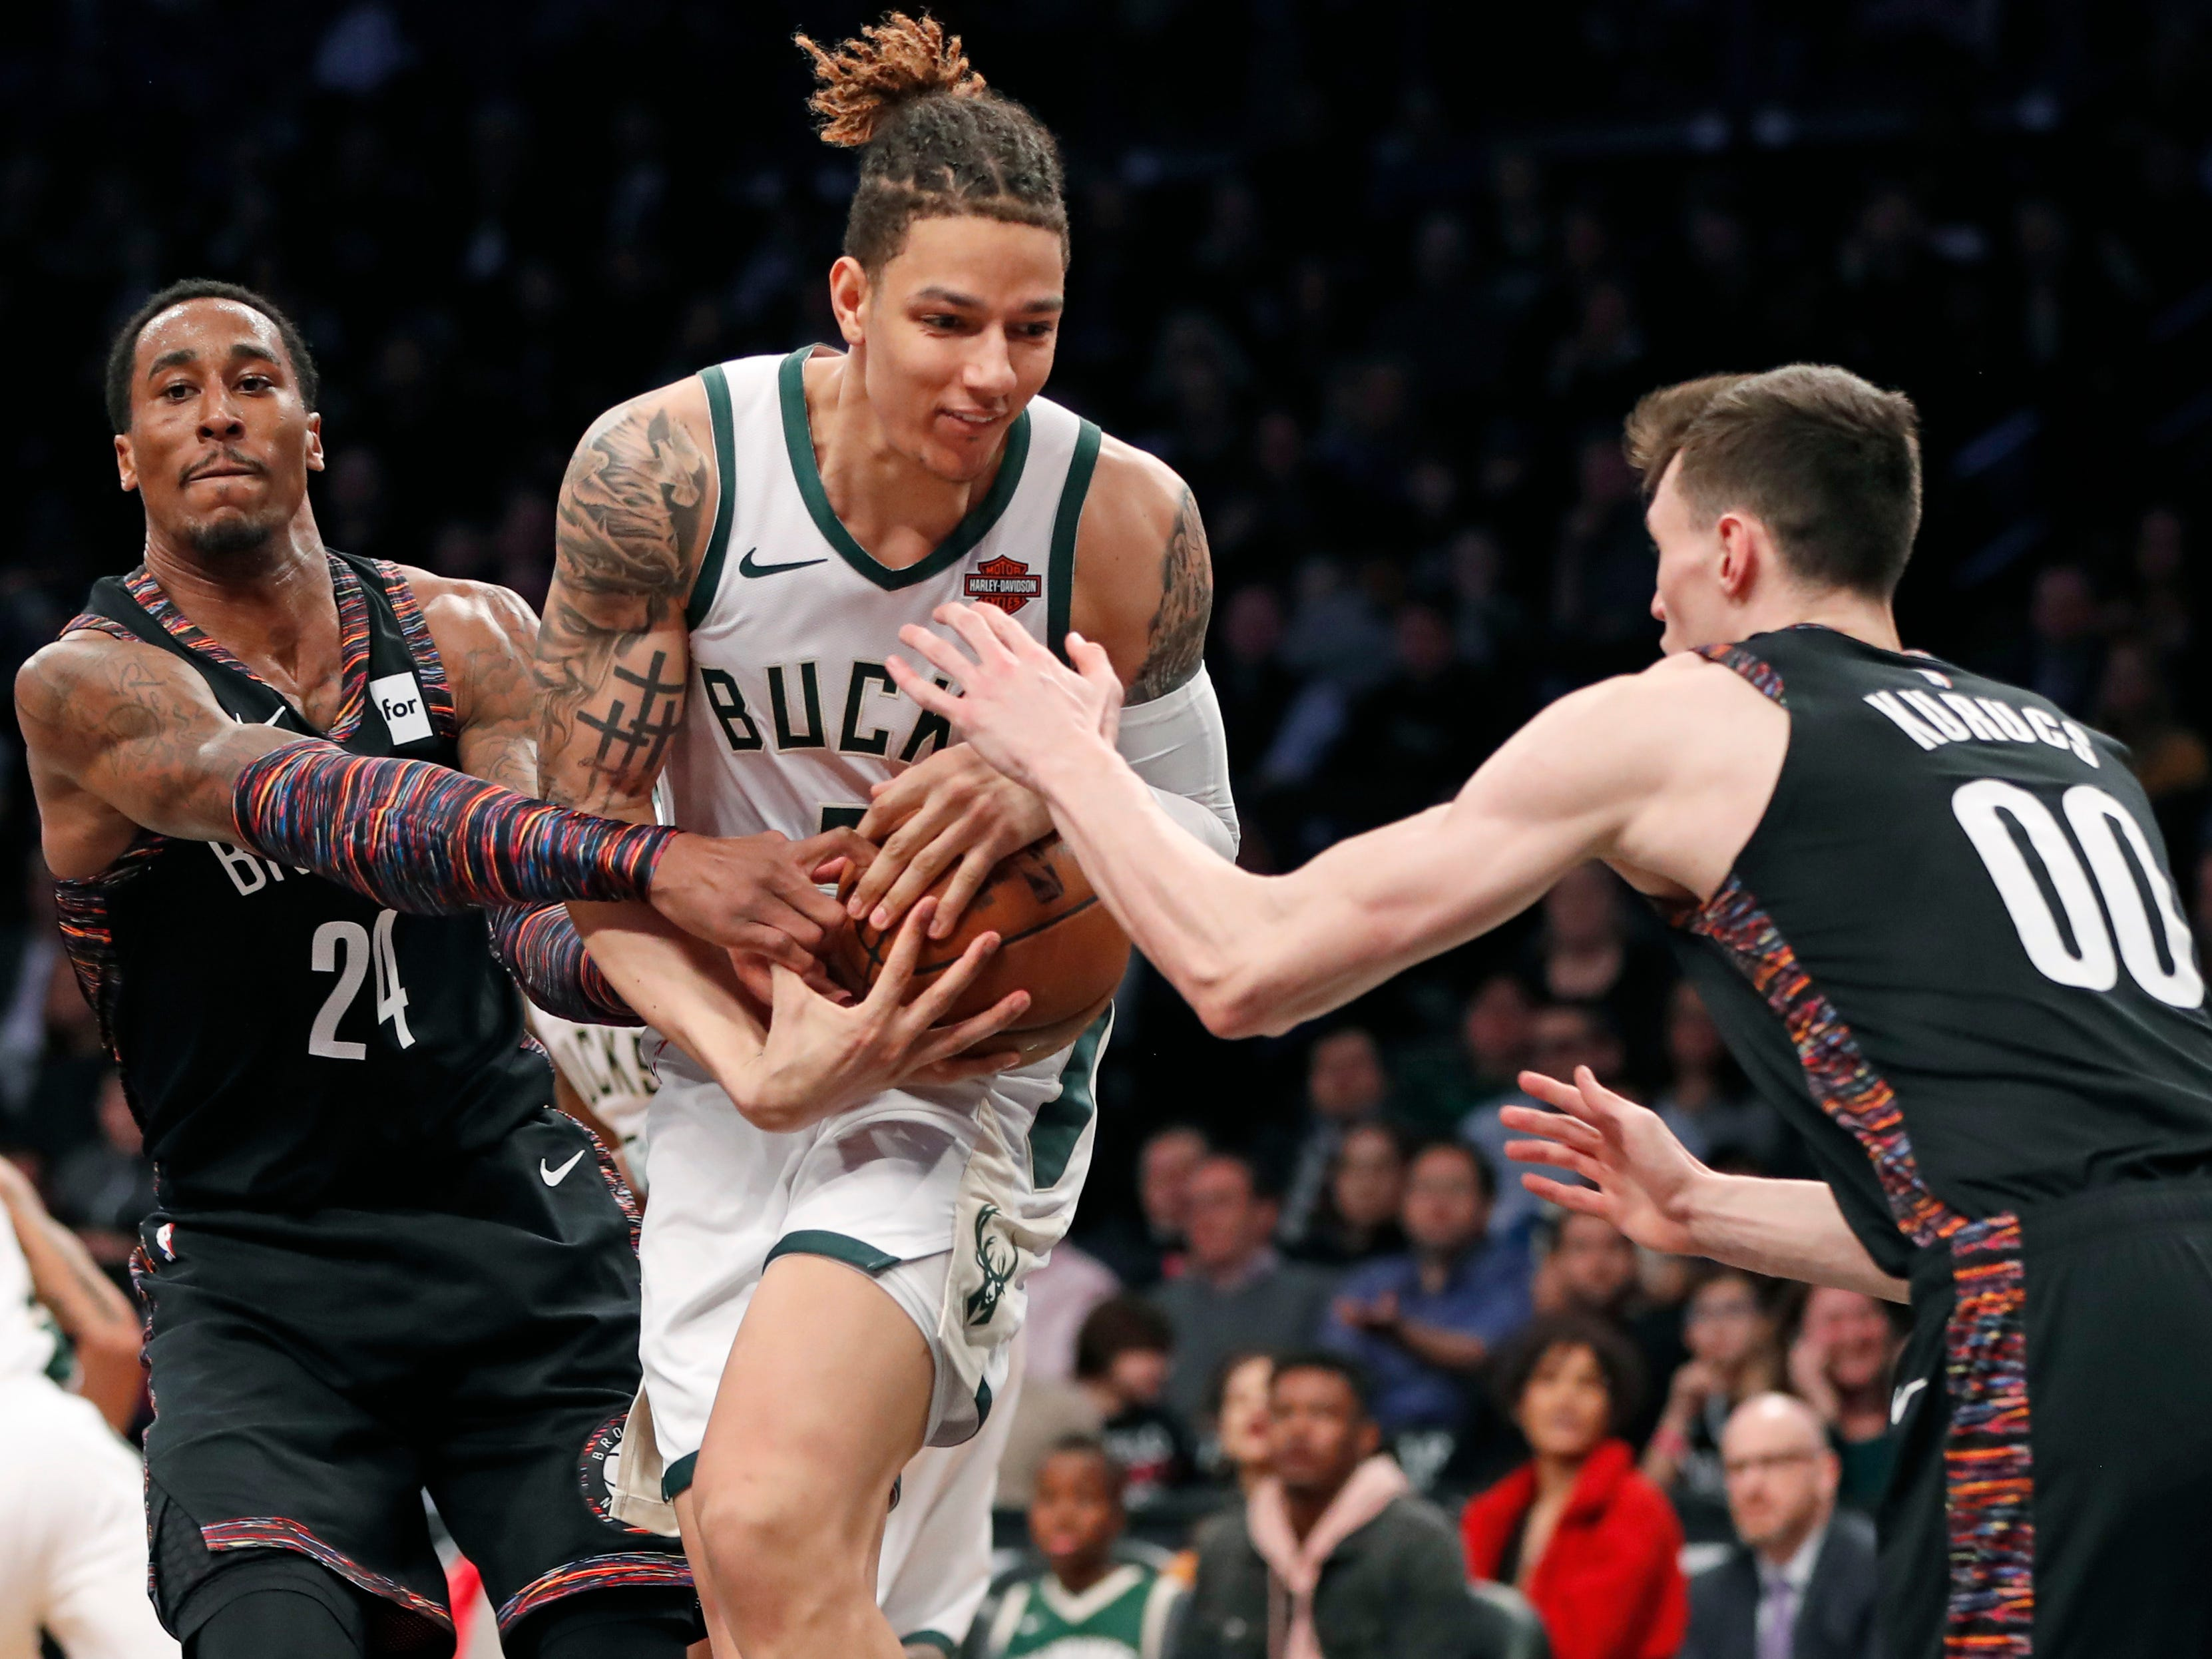 Bucks forward D.J. Wilson protects the ball as Rondae Hollis-Jefferson (left) and  Rodions Kurucs of the Nets try to rip it away during the first half Monday night.